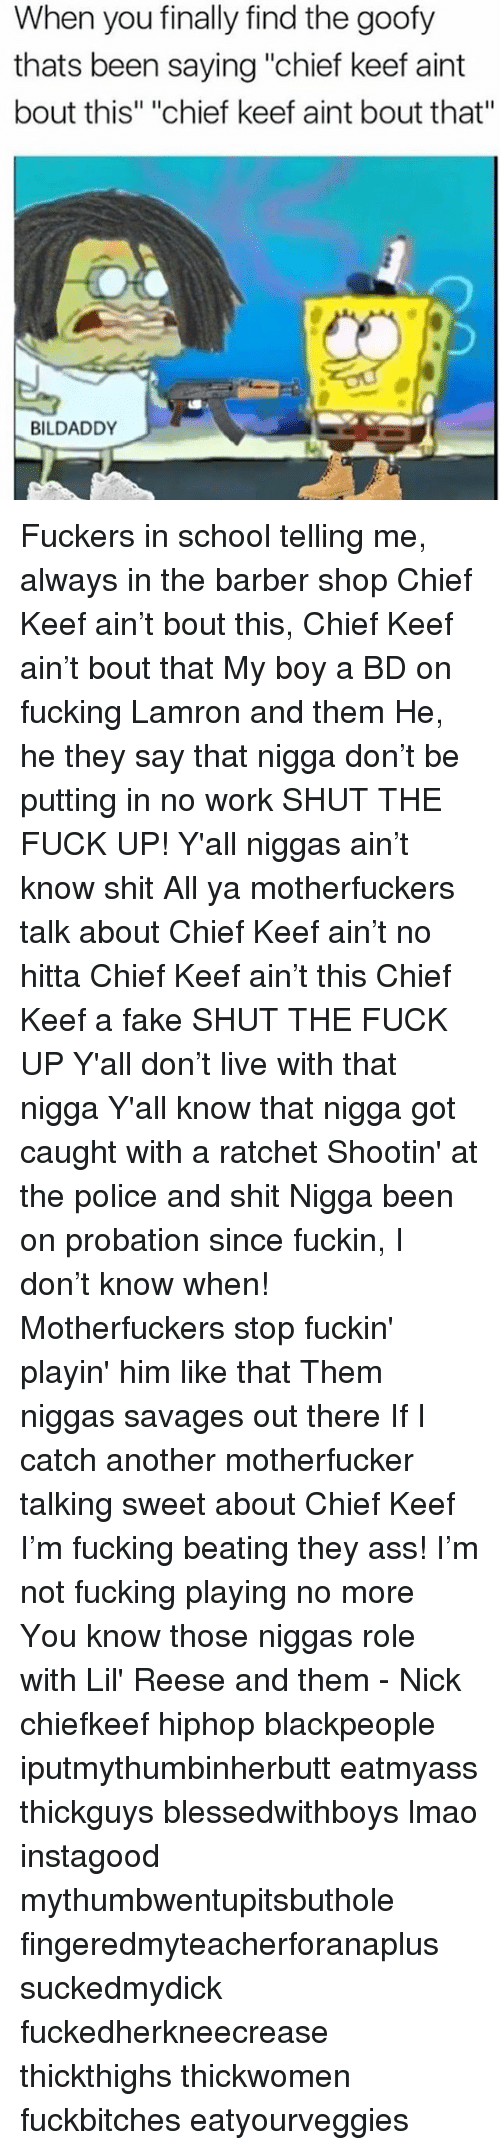 🔥 25+ best memes about chief keef and yall | chief keef and yall memes